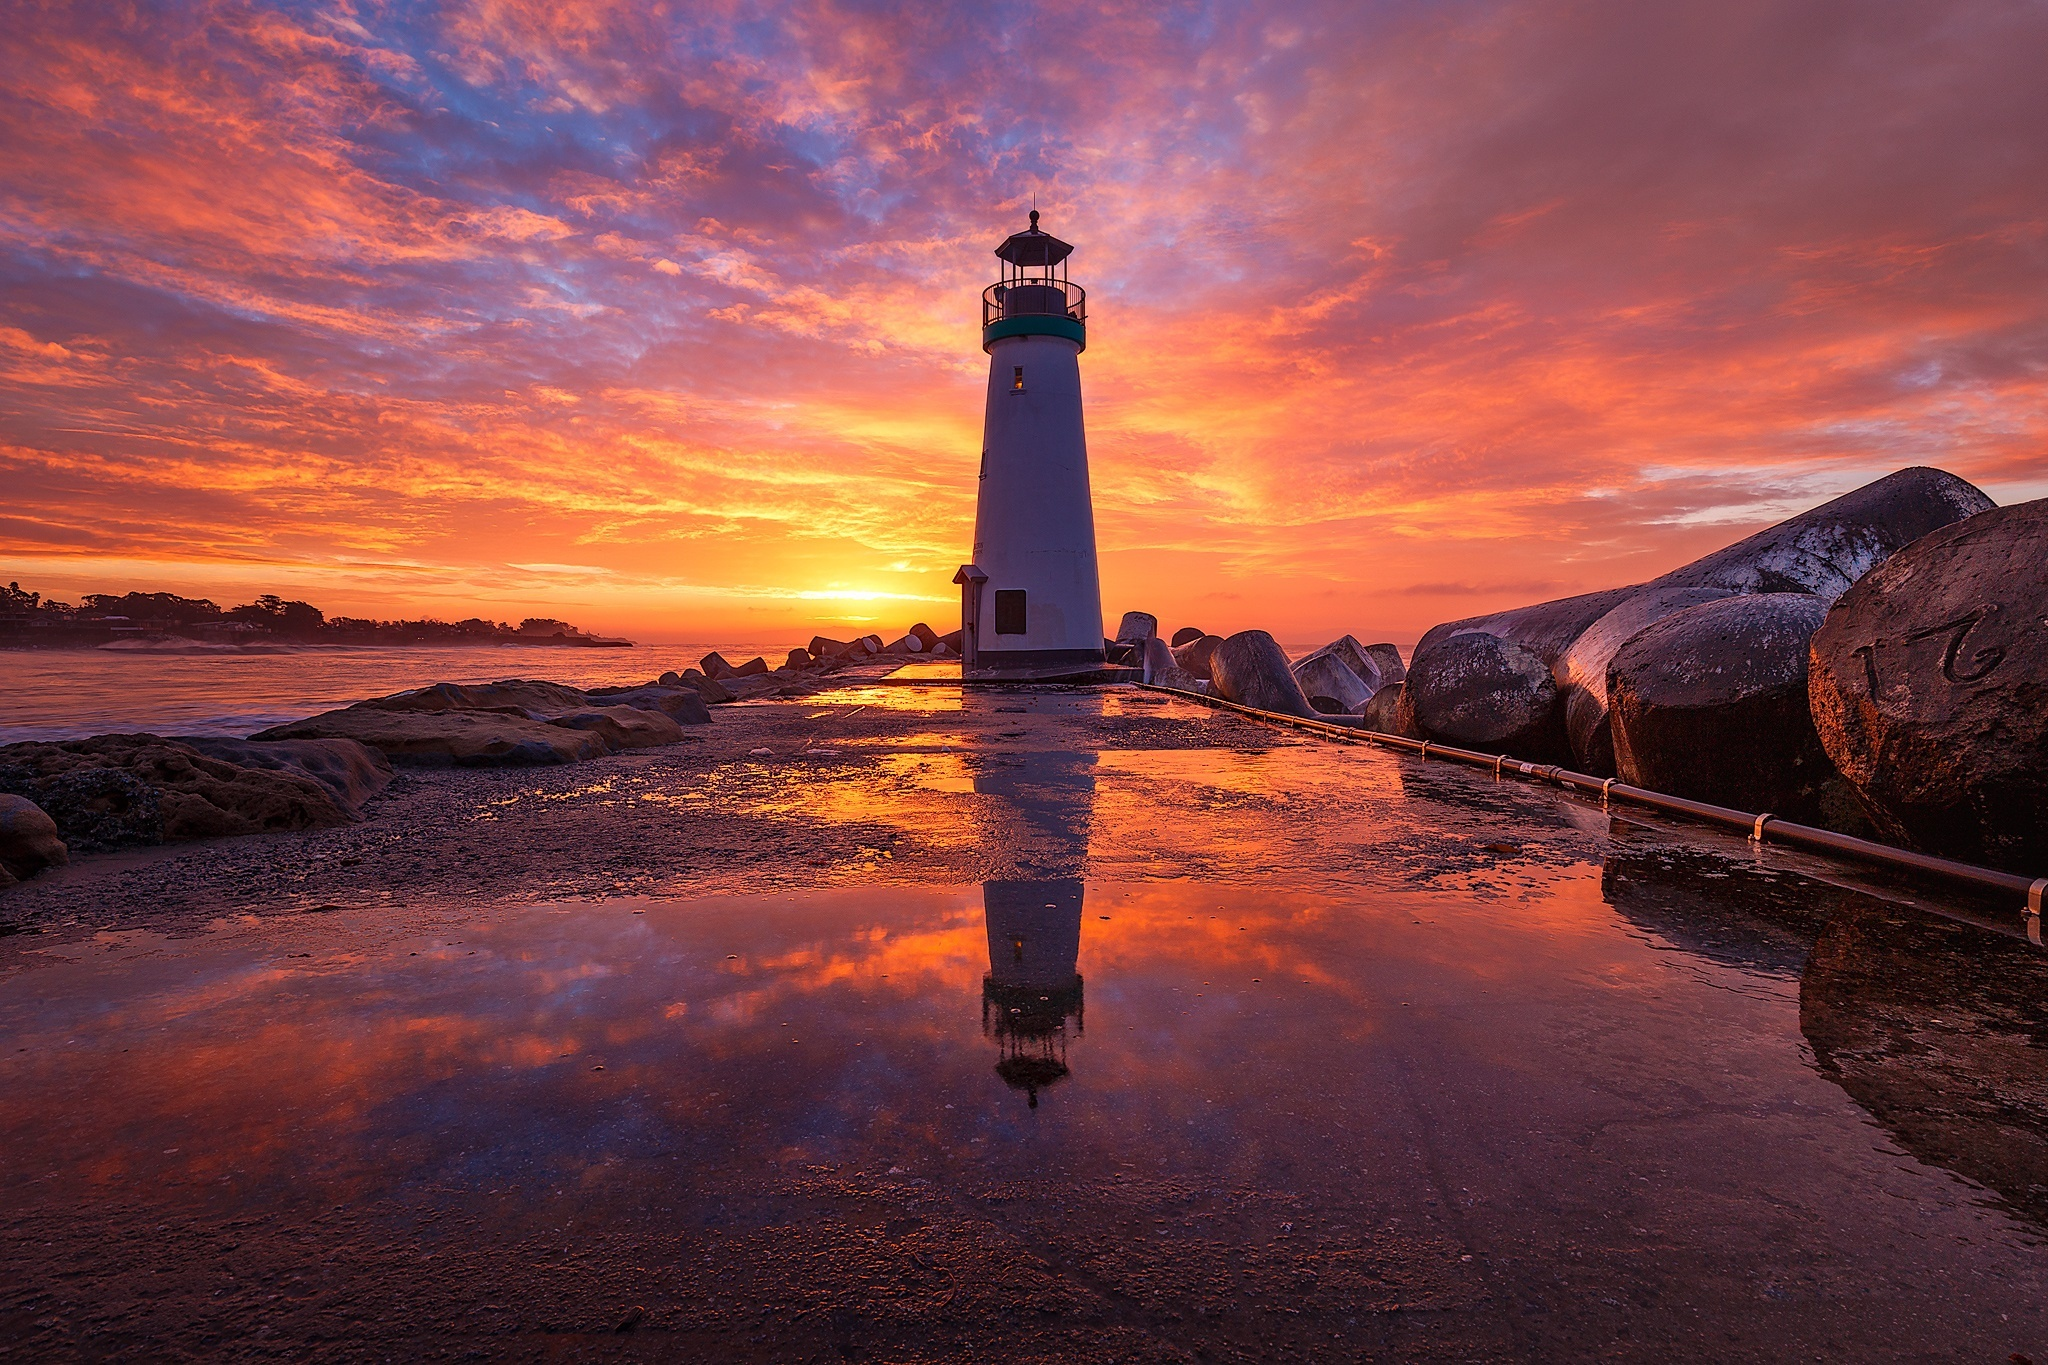 Fiery-sunset-at-lighthouse-pier